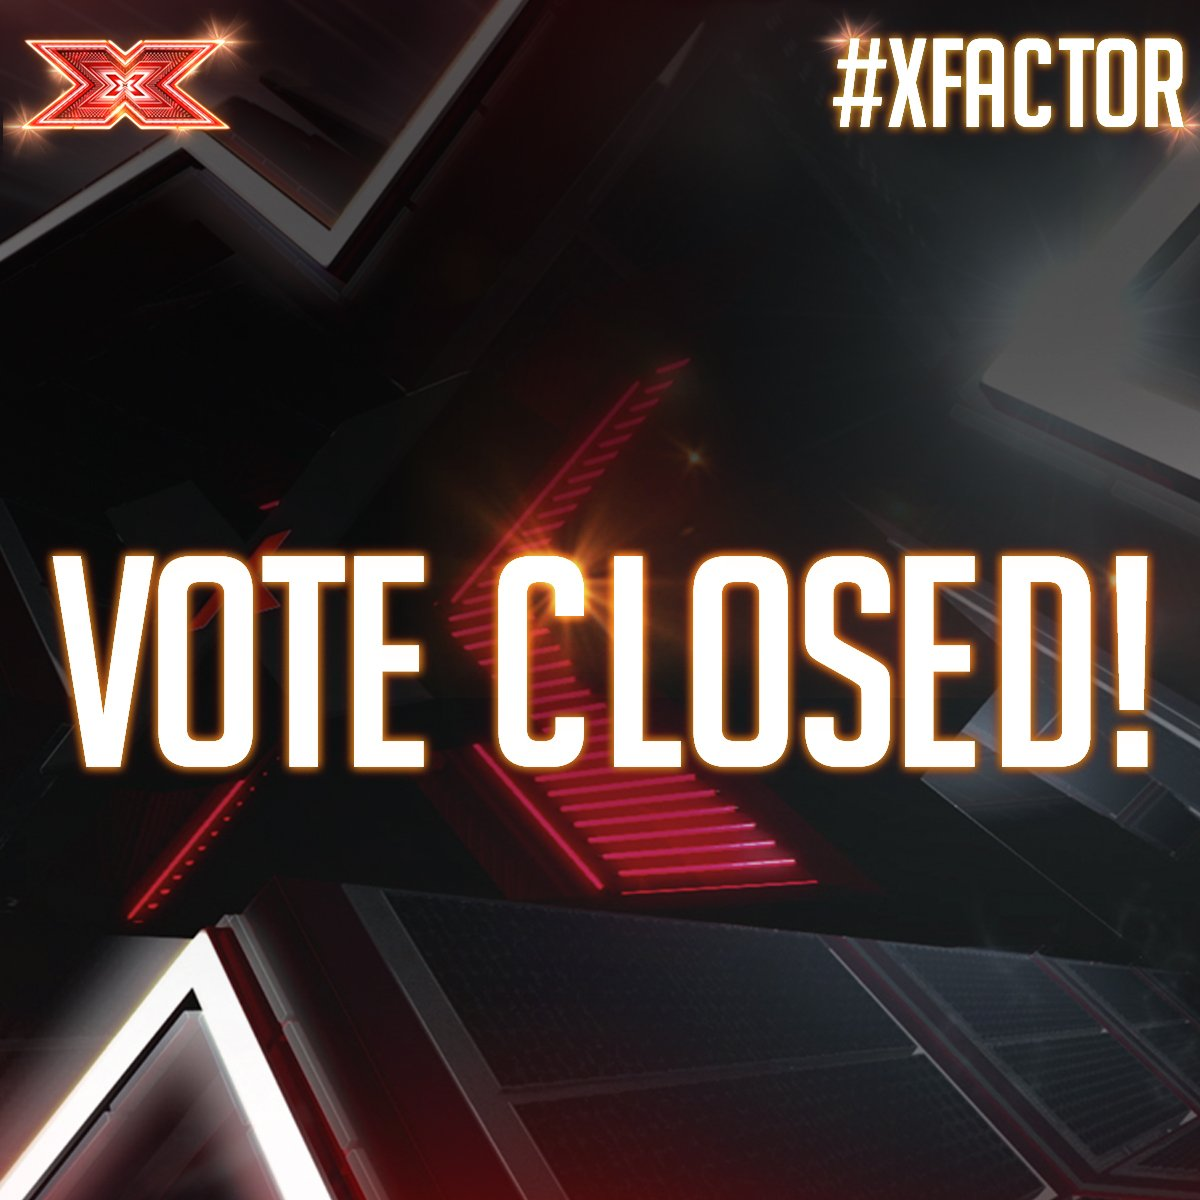 Phone lines are now closed! Thanks for voting for your WINNER! 🏆 #XFactor #XFactorFinal https://t.co/iaxDxTqYx4